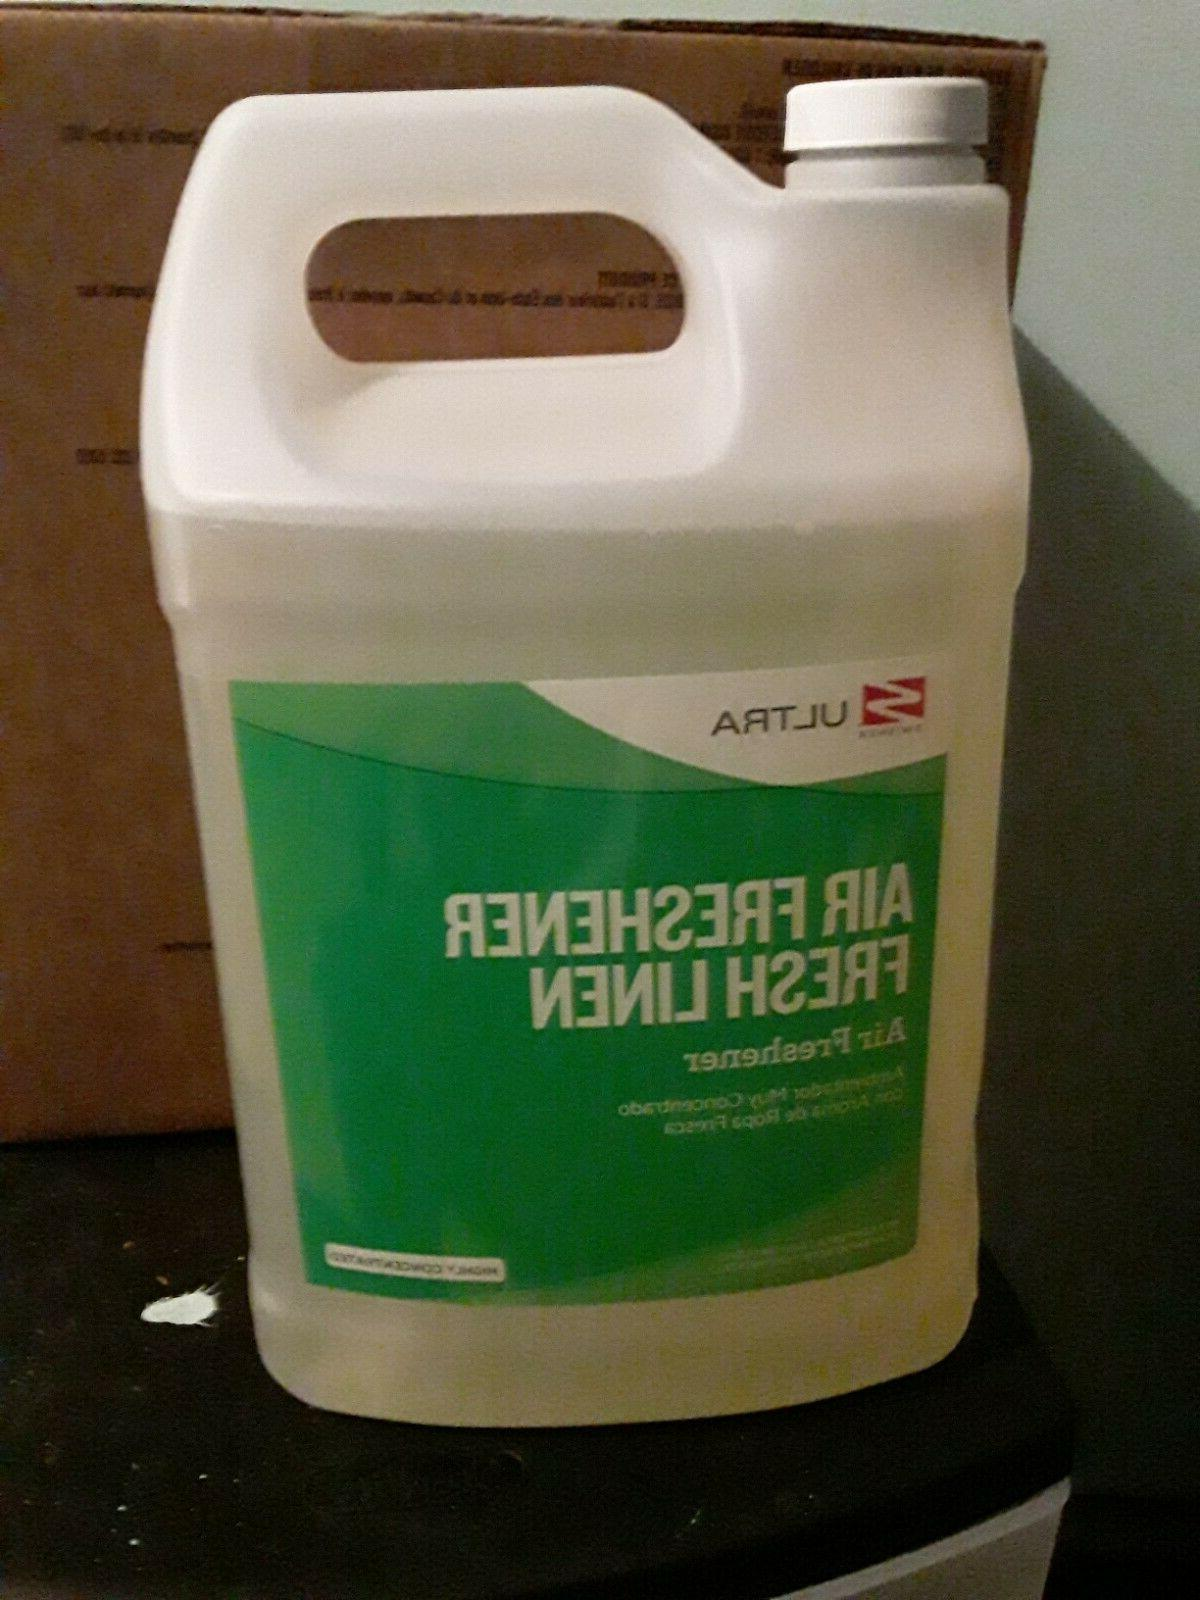 air freshener highly concentrated 1 gallon